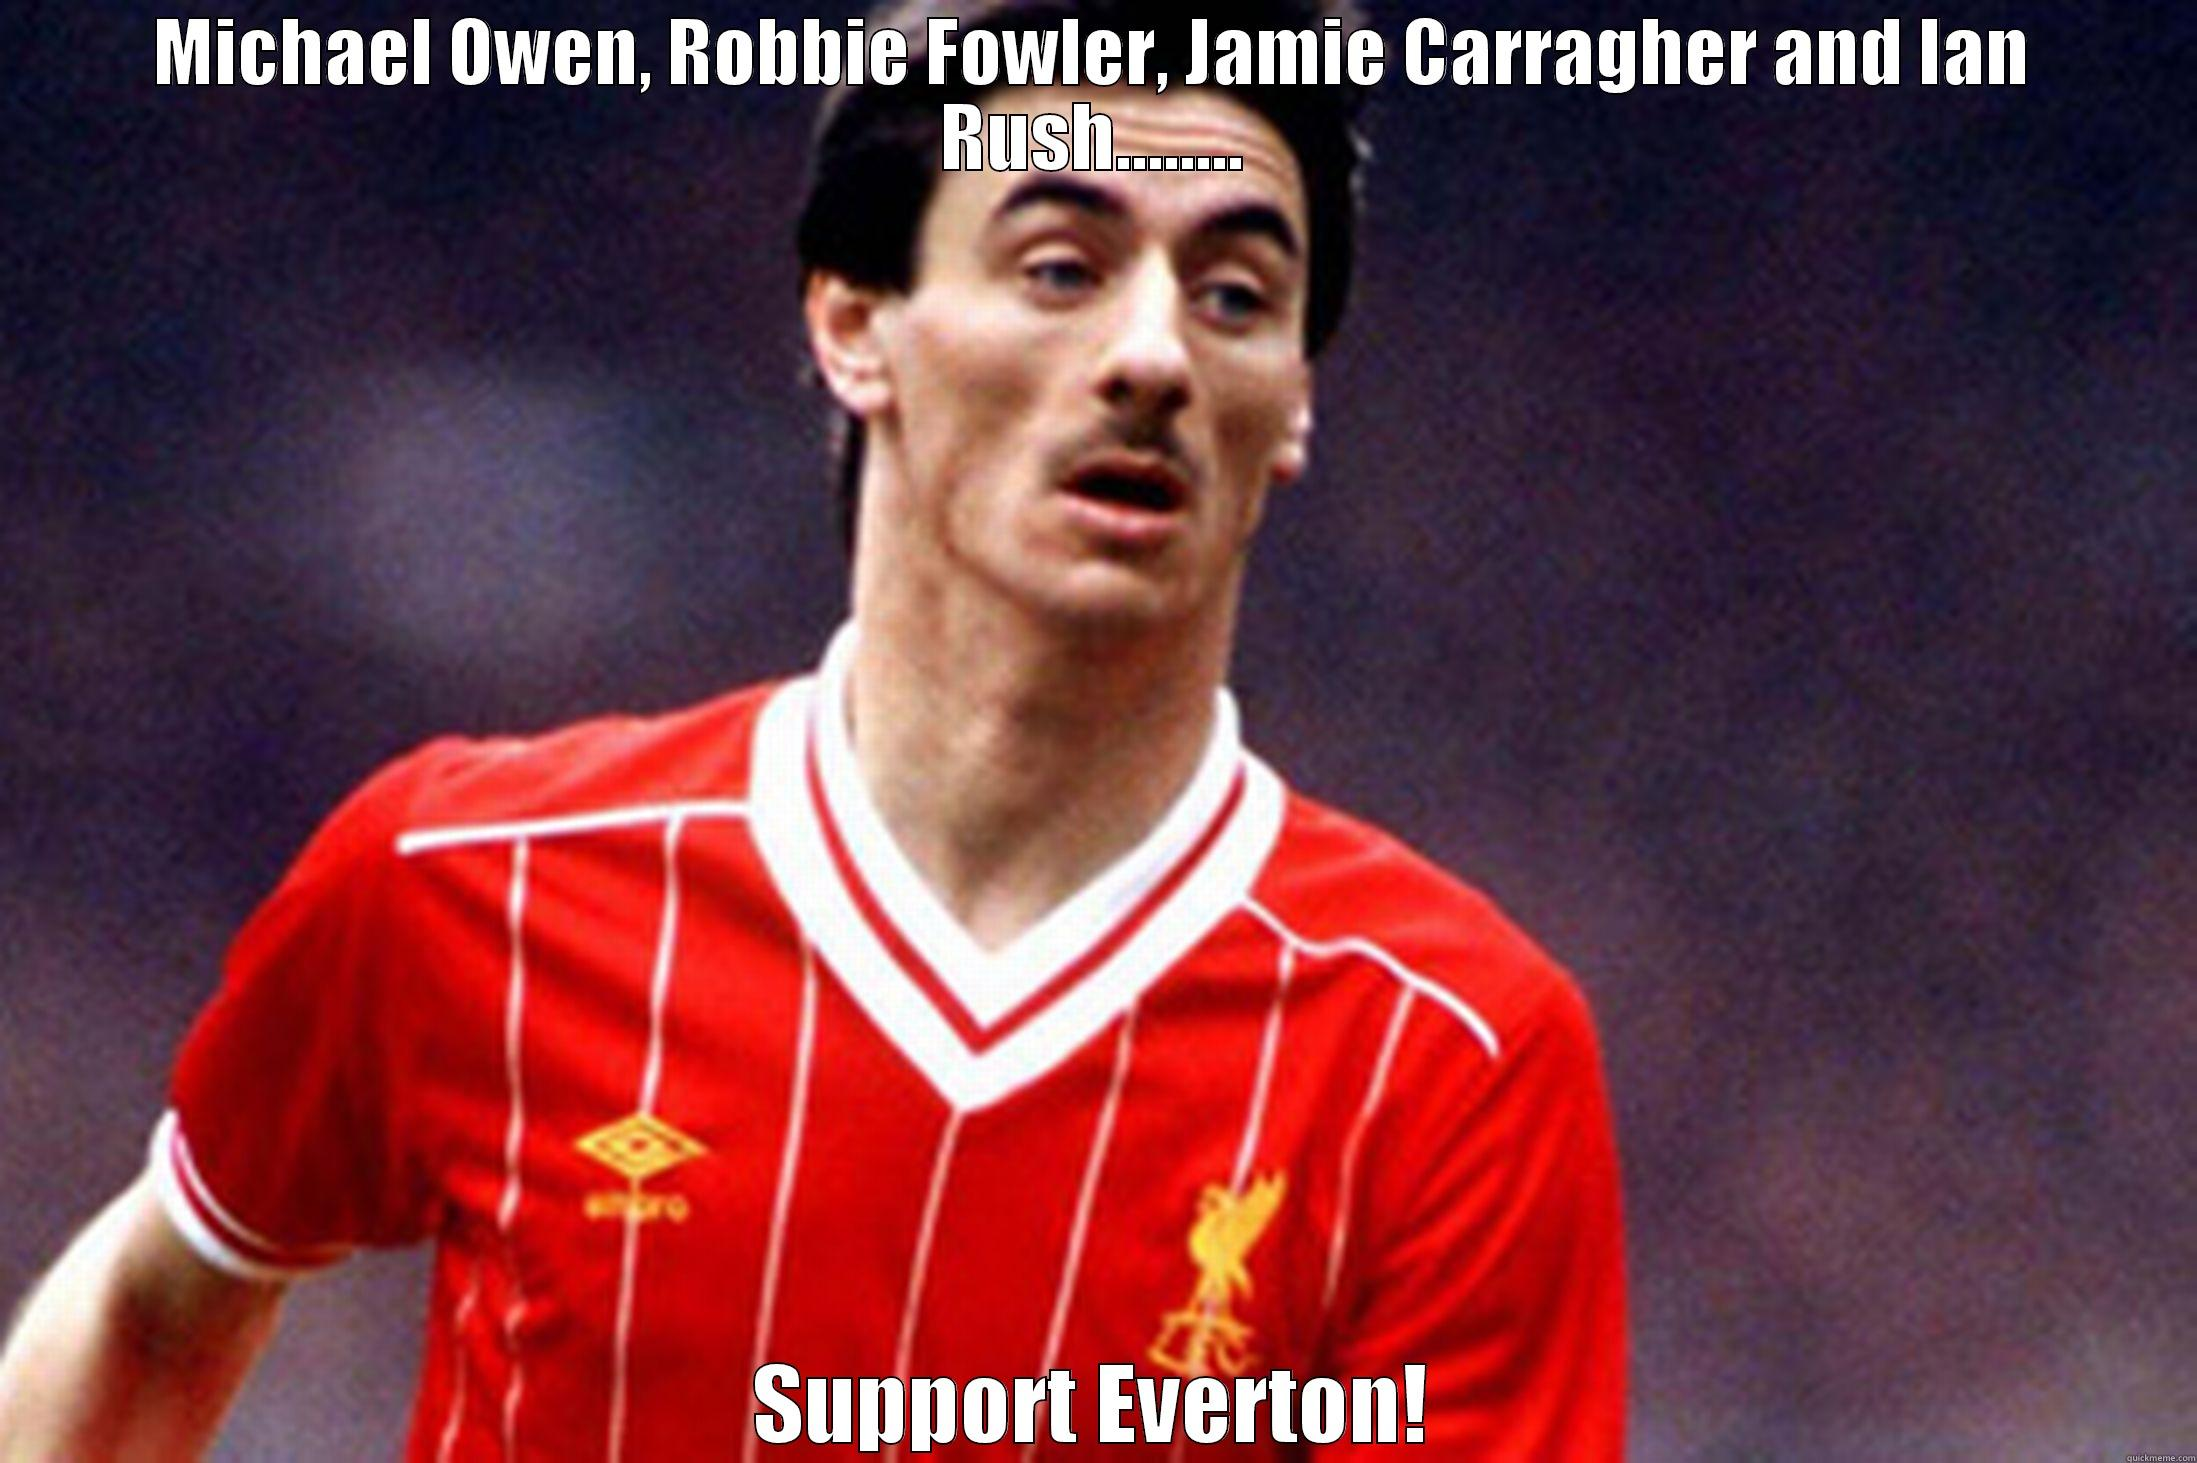 Oh dear everton - MICHAEL OWEN, ROBBIE FOWLER, JAMIE CARRAGHER AND IAN RUSH........ SUPPORT EVERTON! Misc